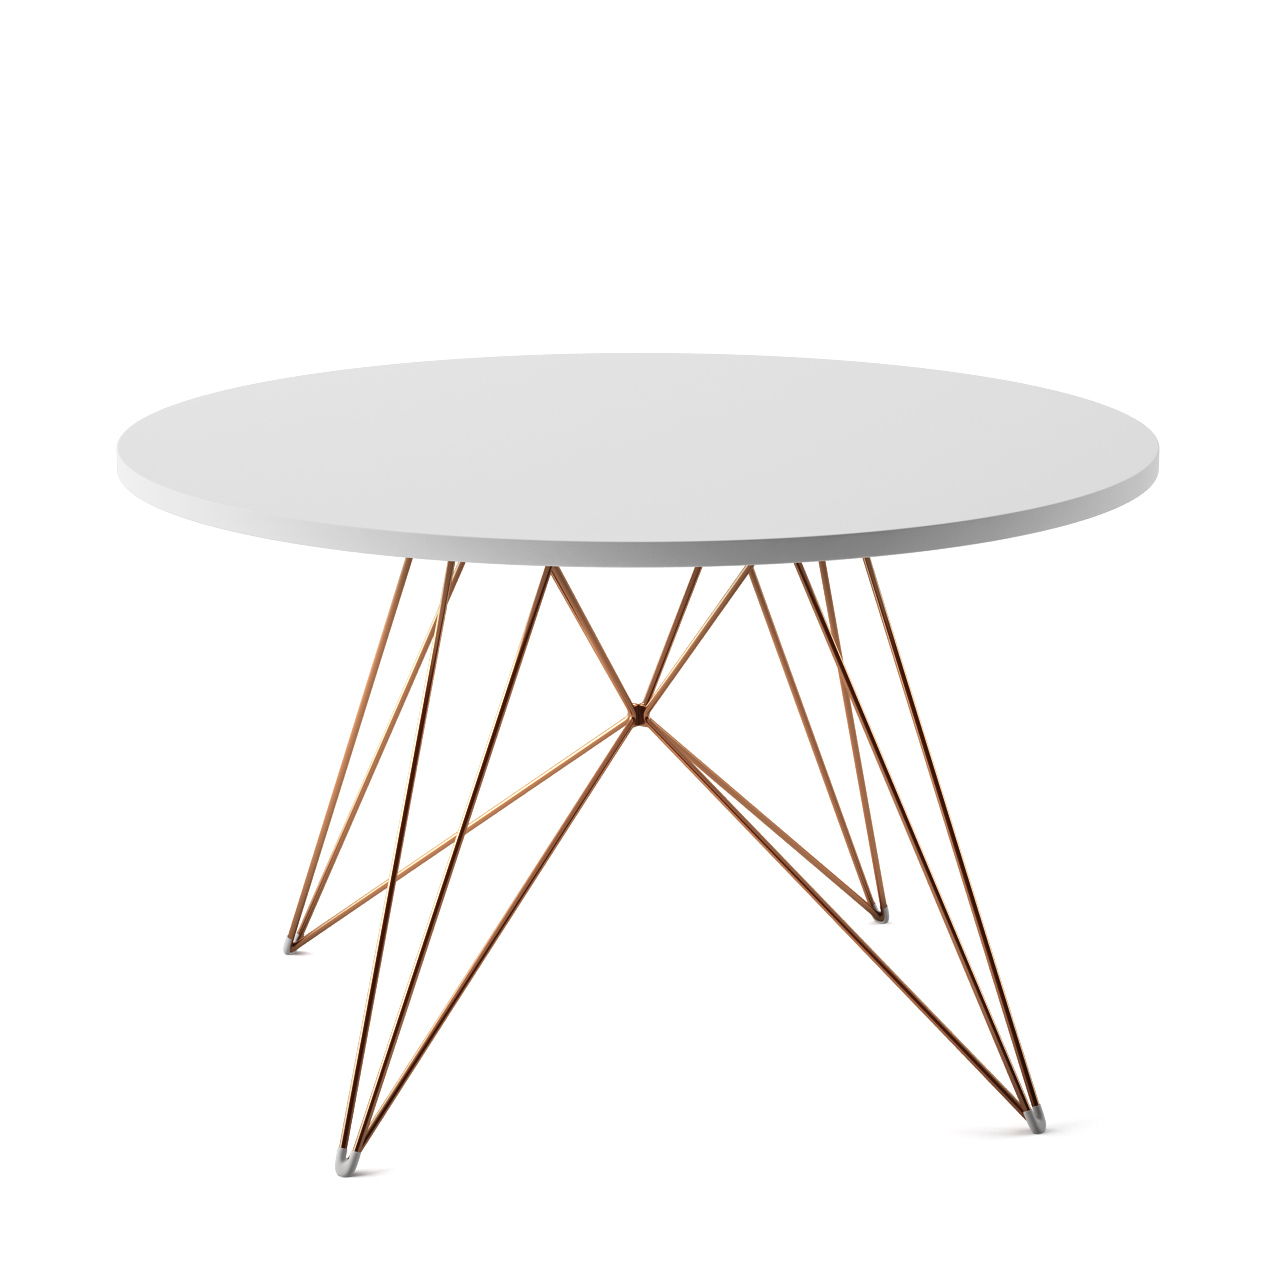 Xz3 Table Round By Magis Dimensiva